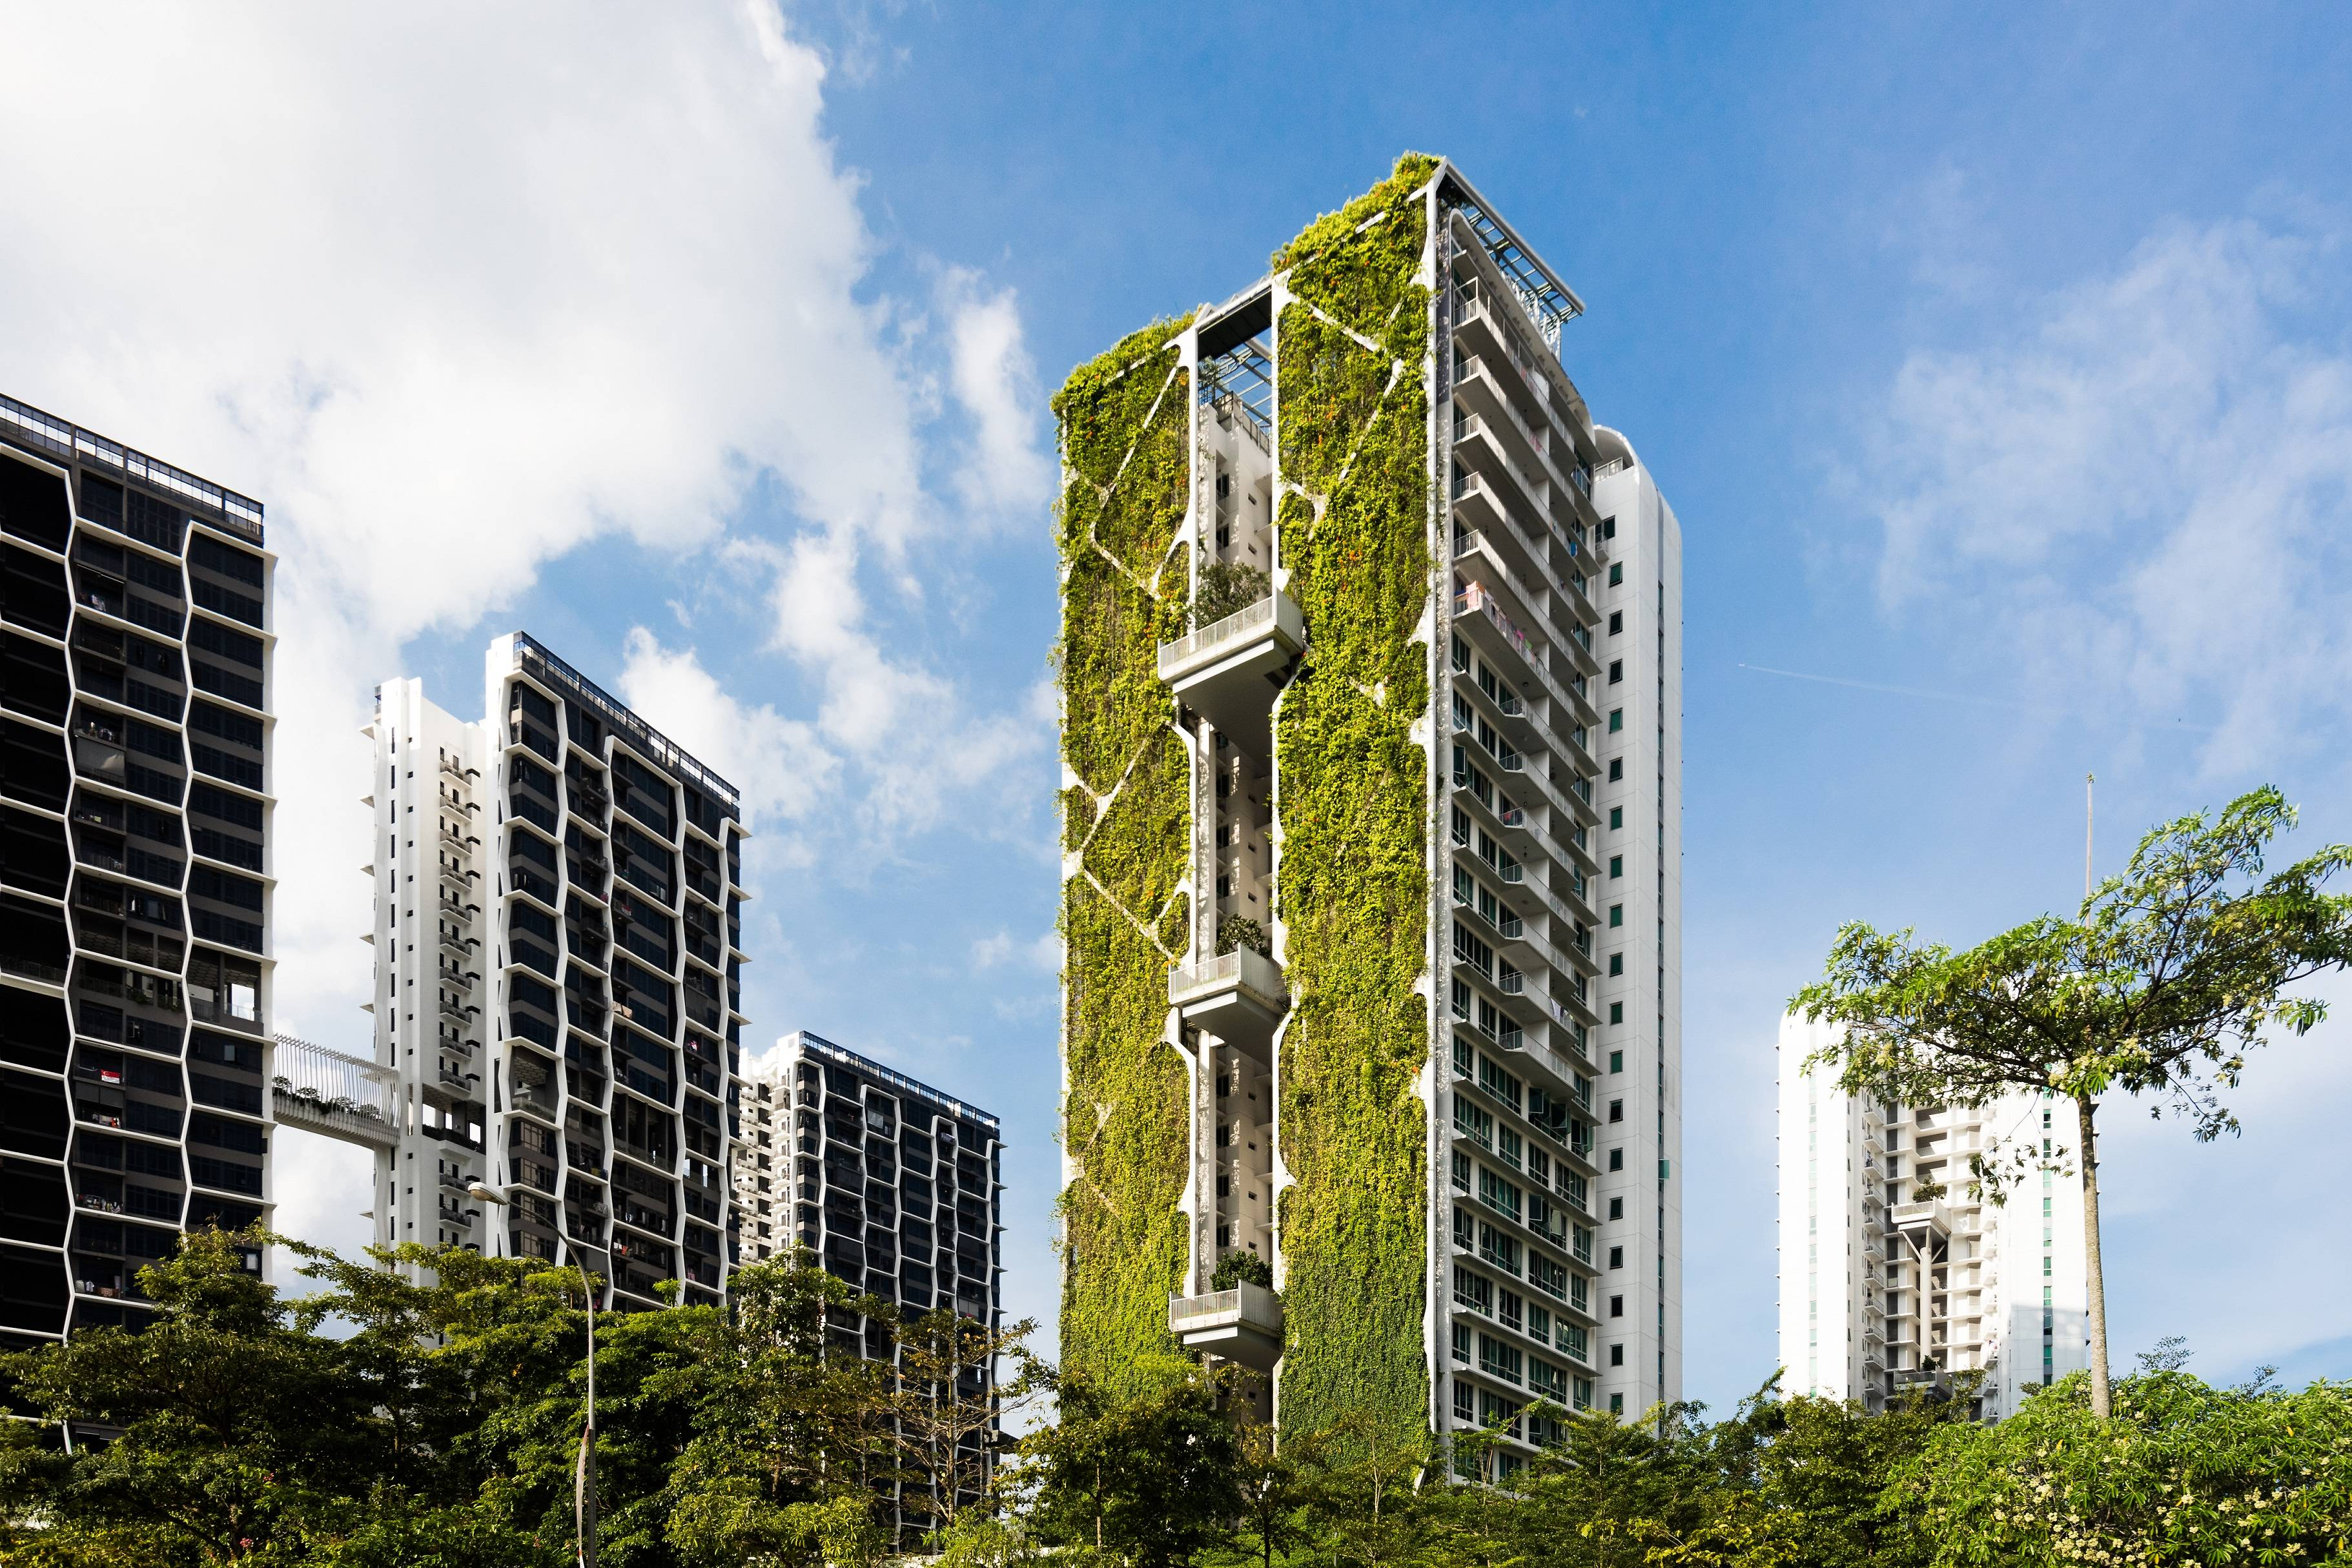 More Urban Farms Rooftop Gardens In Singapore With